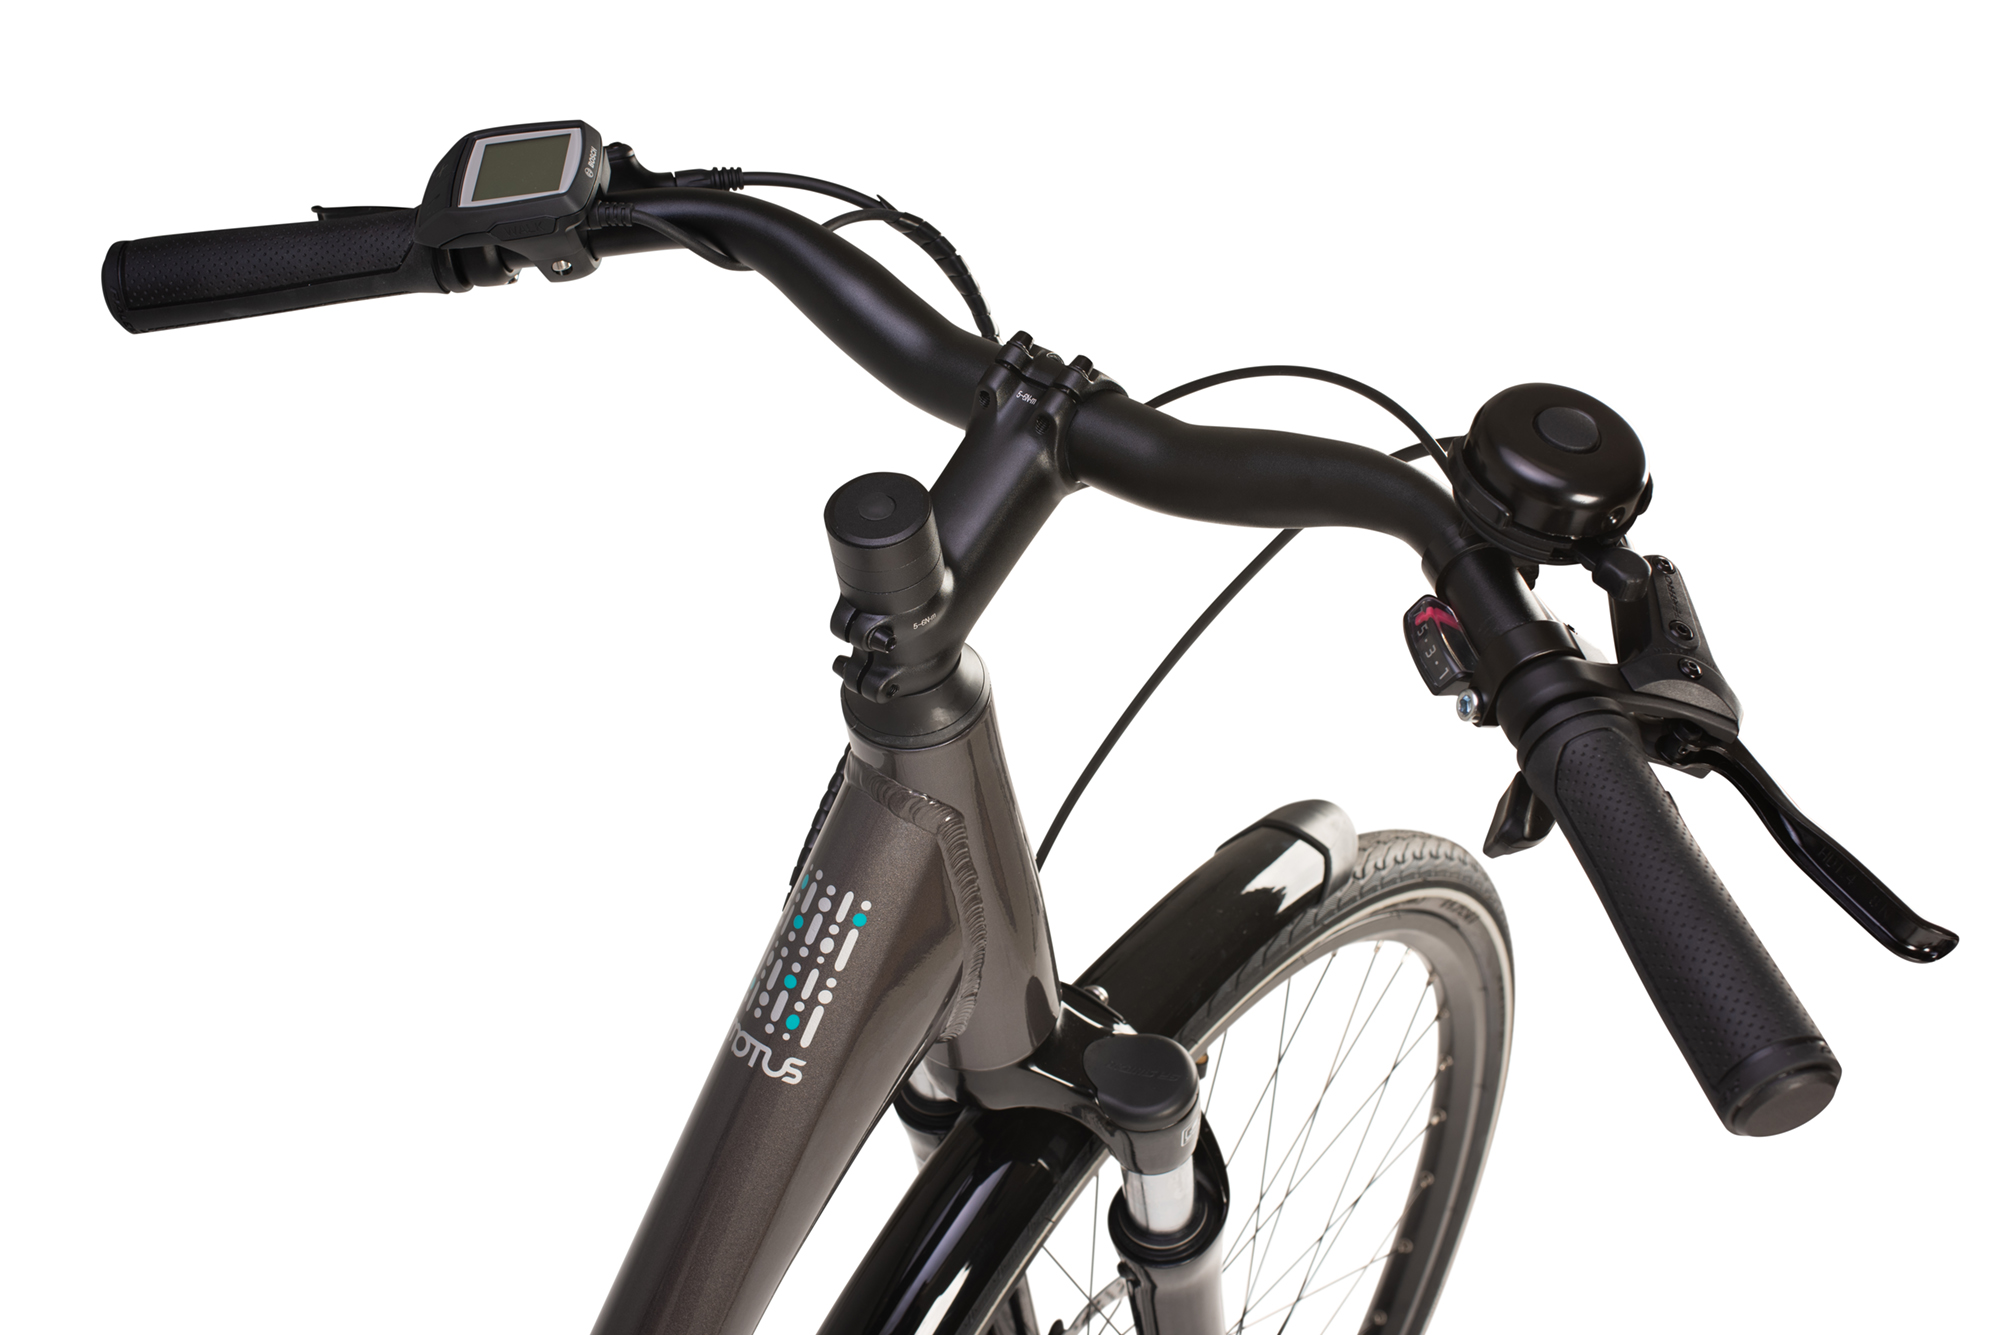 Handlebars on the Raleigh Motus Low Step electric bike in grey colour